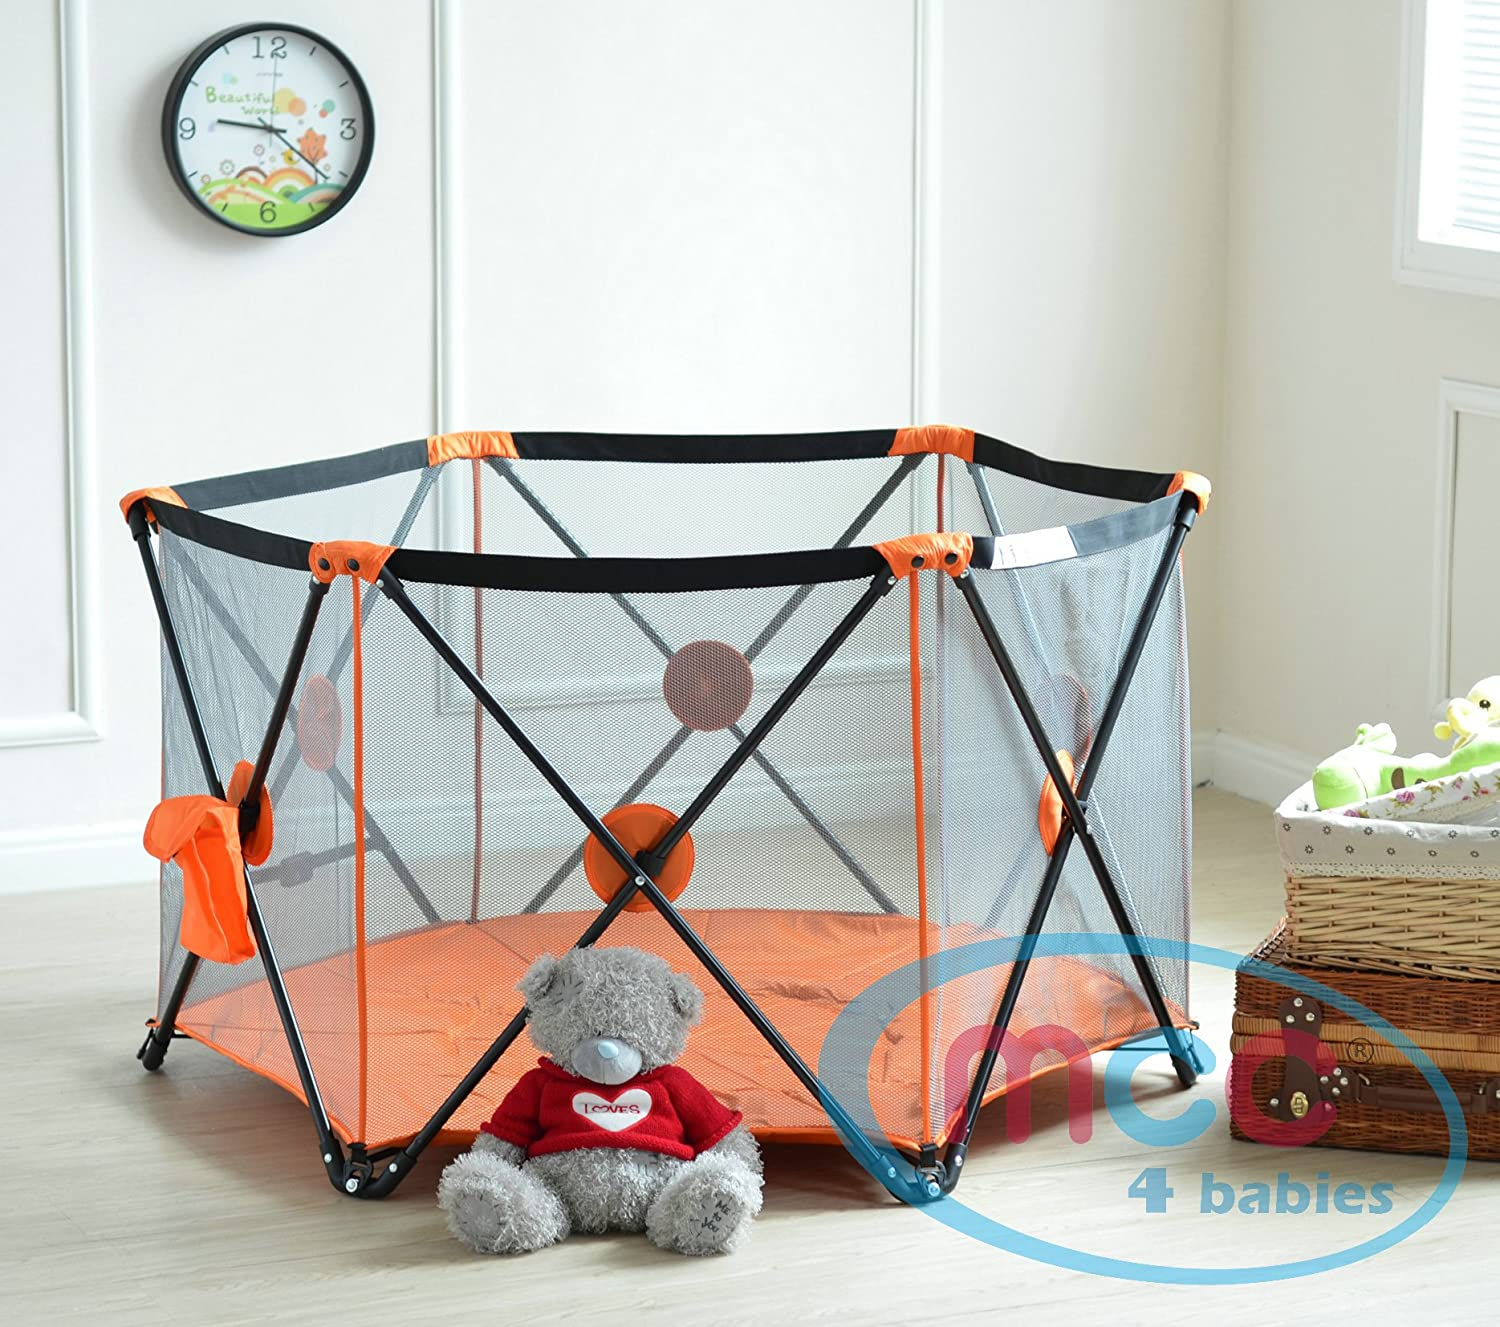 Top 10 Best Baby Playpens And Playards Reviews 2018 2019